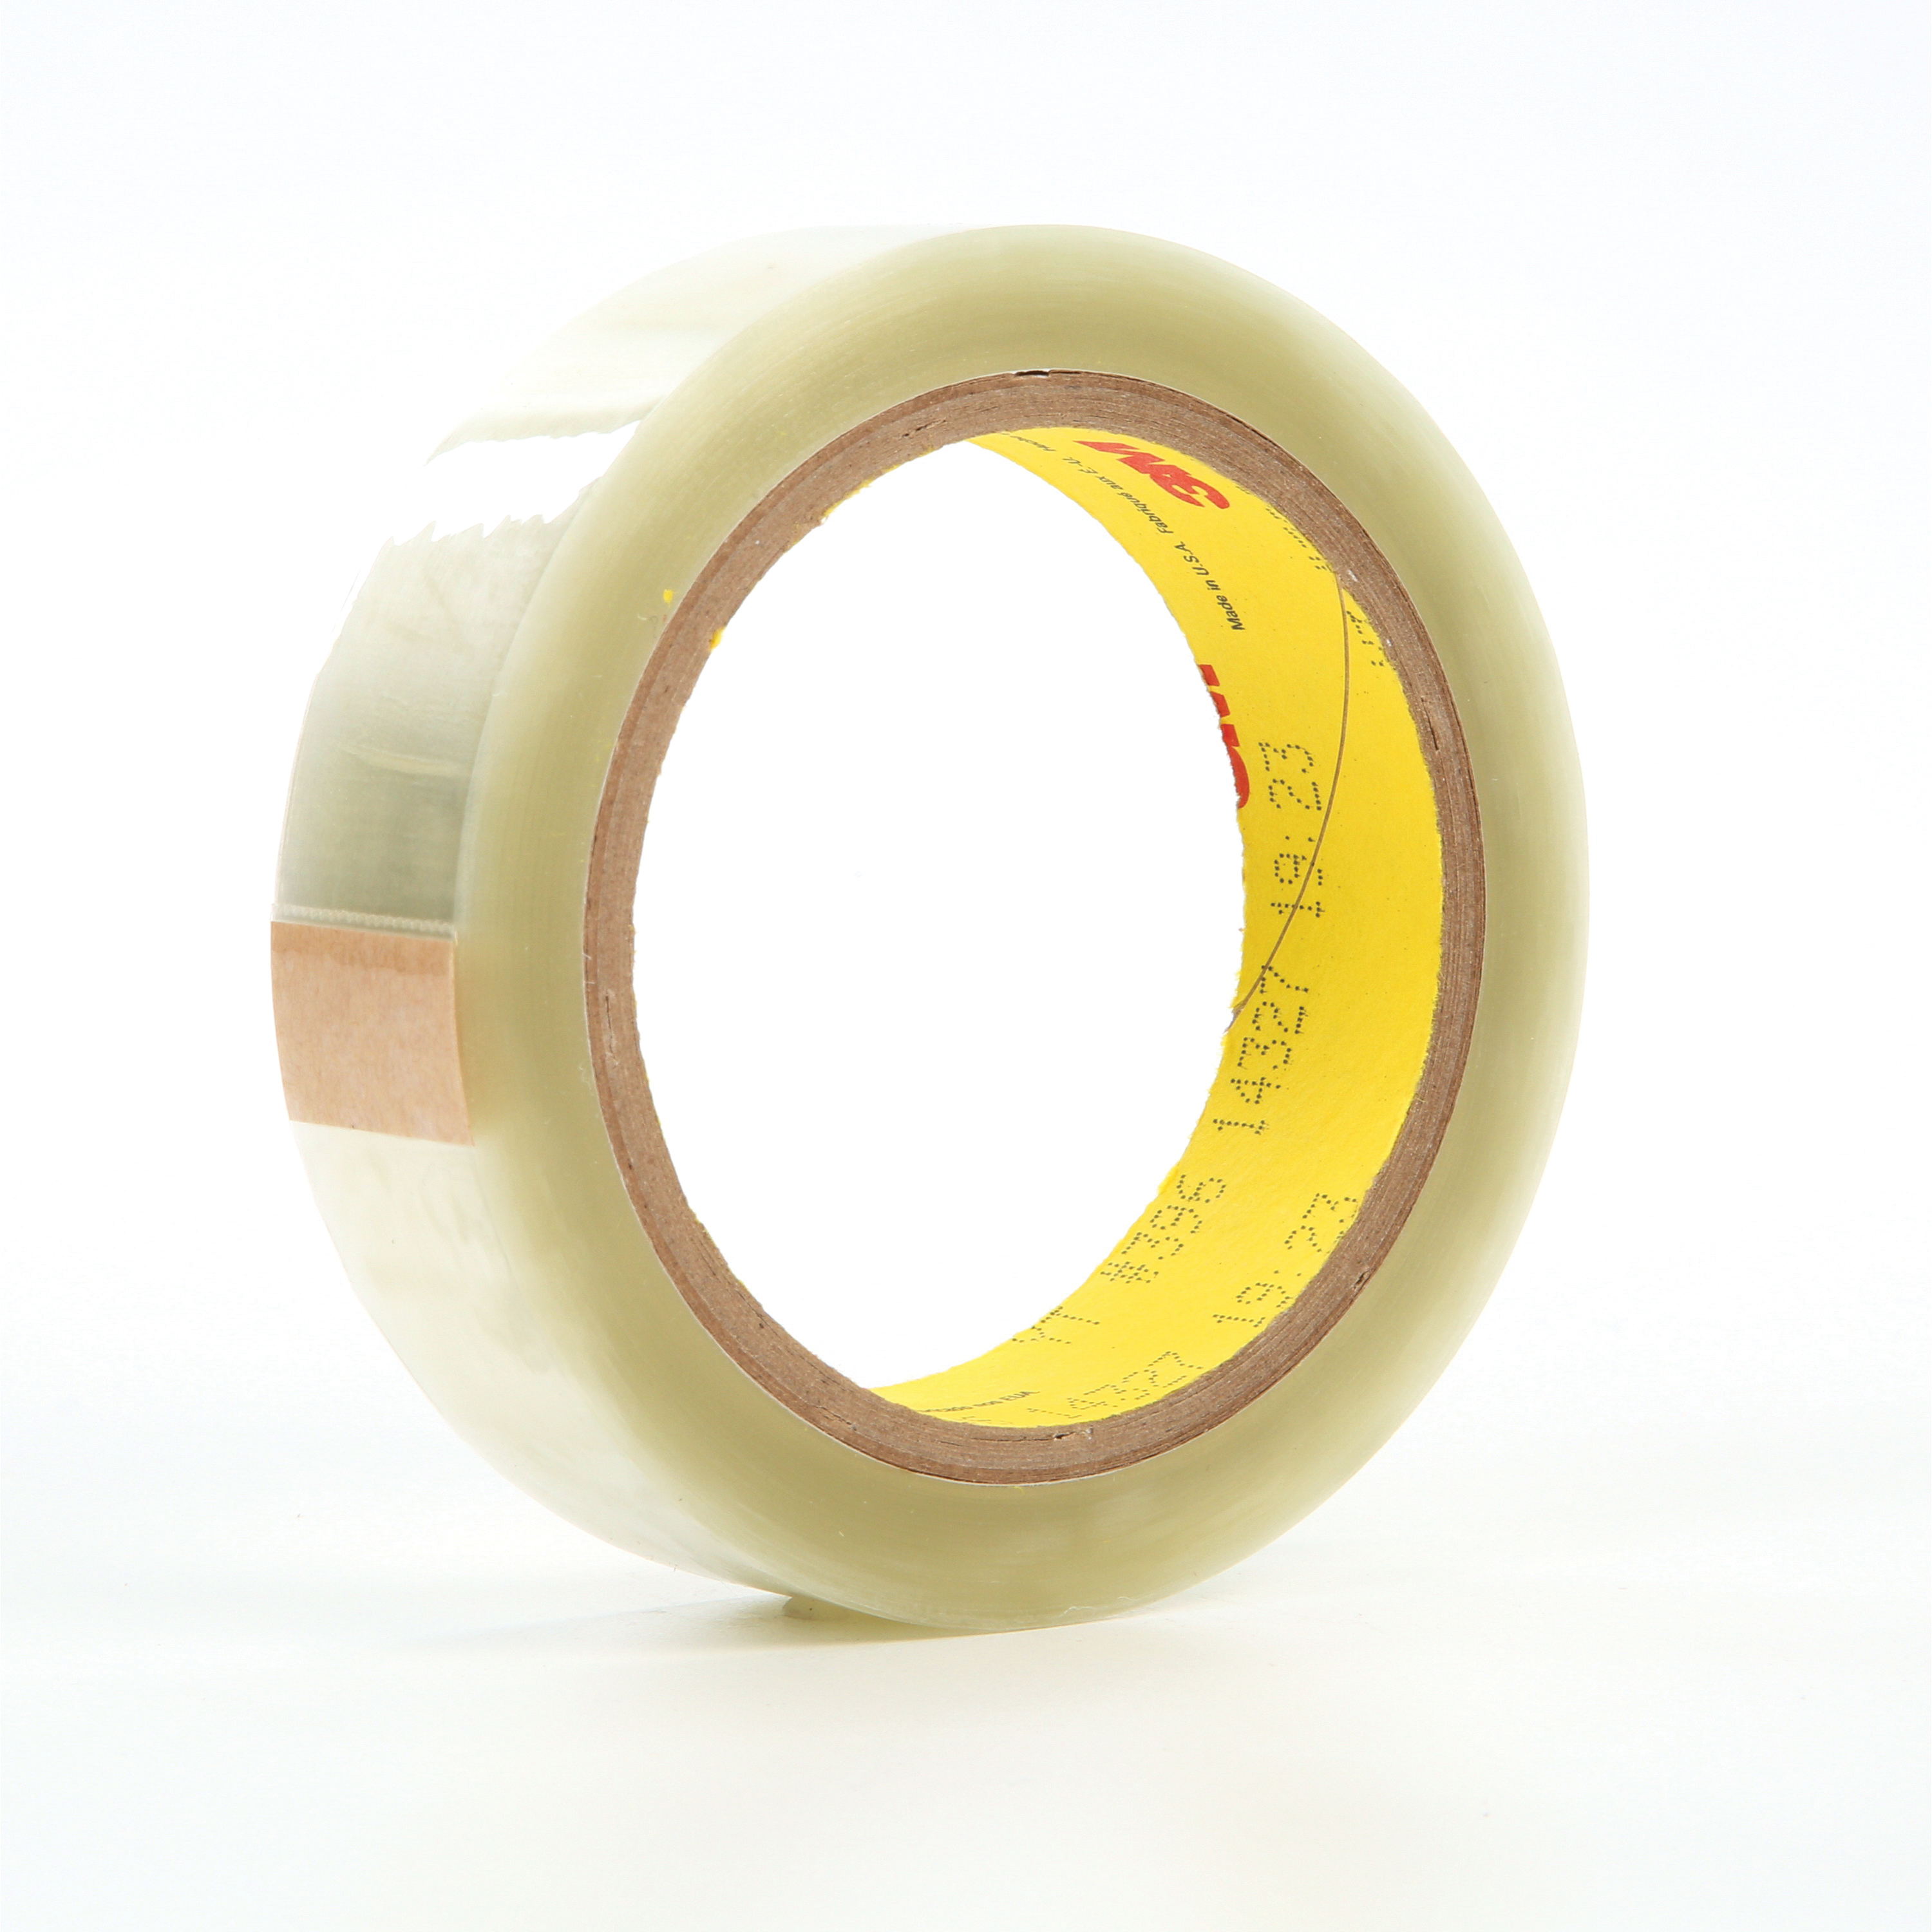 3M™ 021200-19084 Super Bond Film Tape, 36 yd L x 1 in W, 4.1 mil THK, Rubber Adhesive, Polyester Backing, Transparent